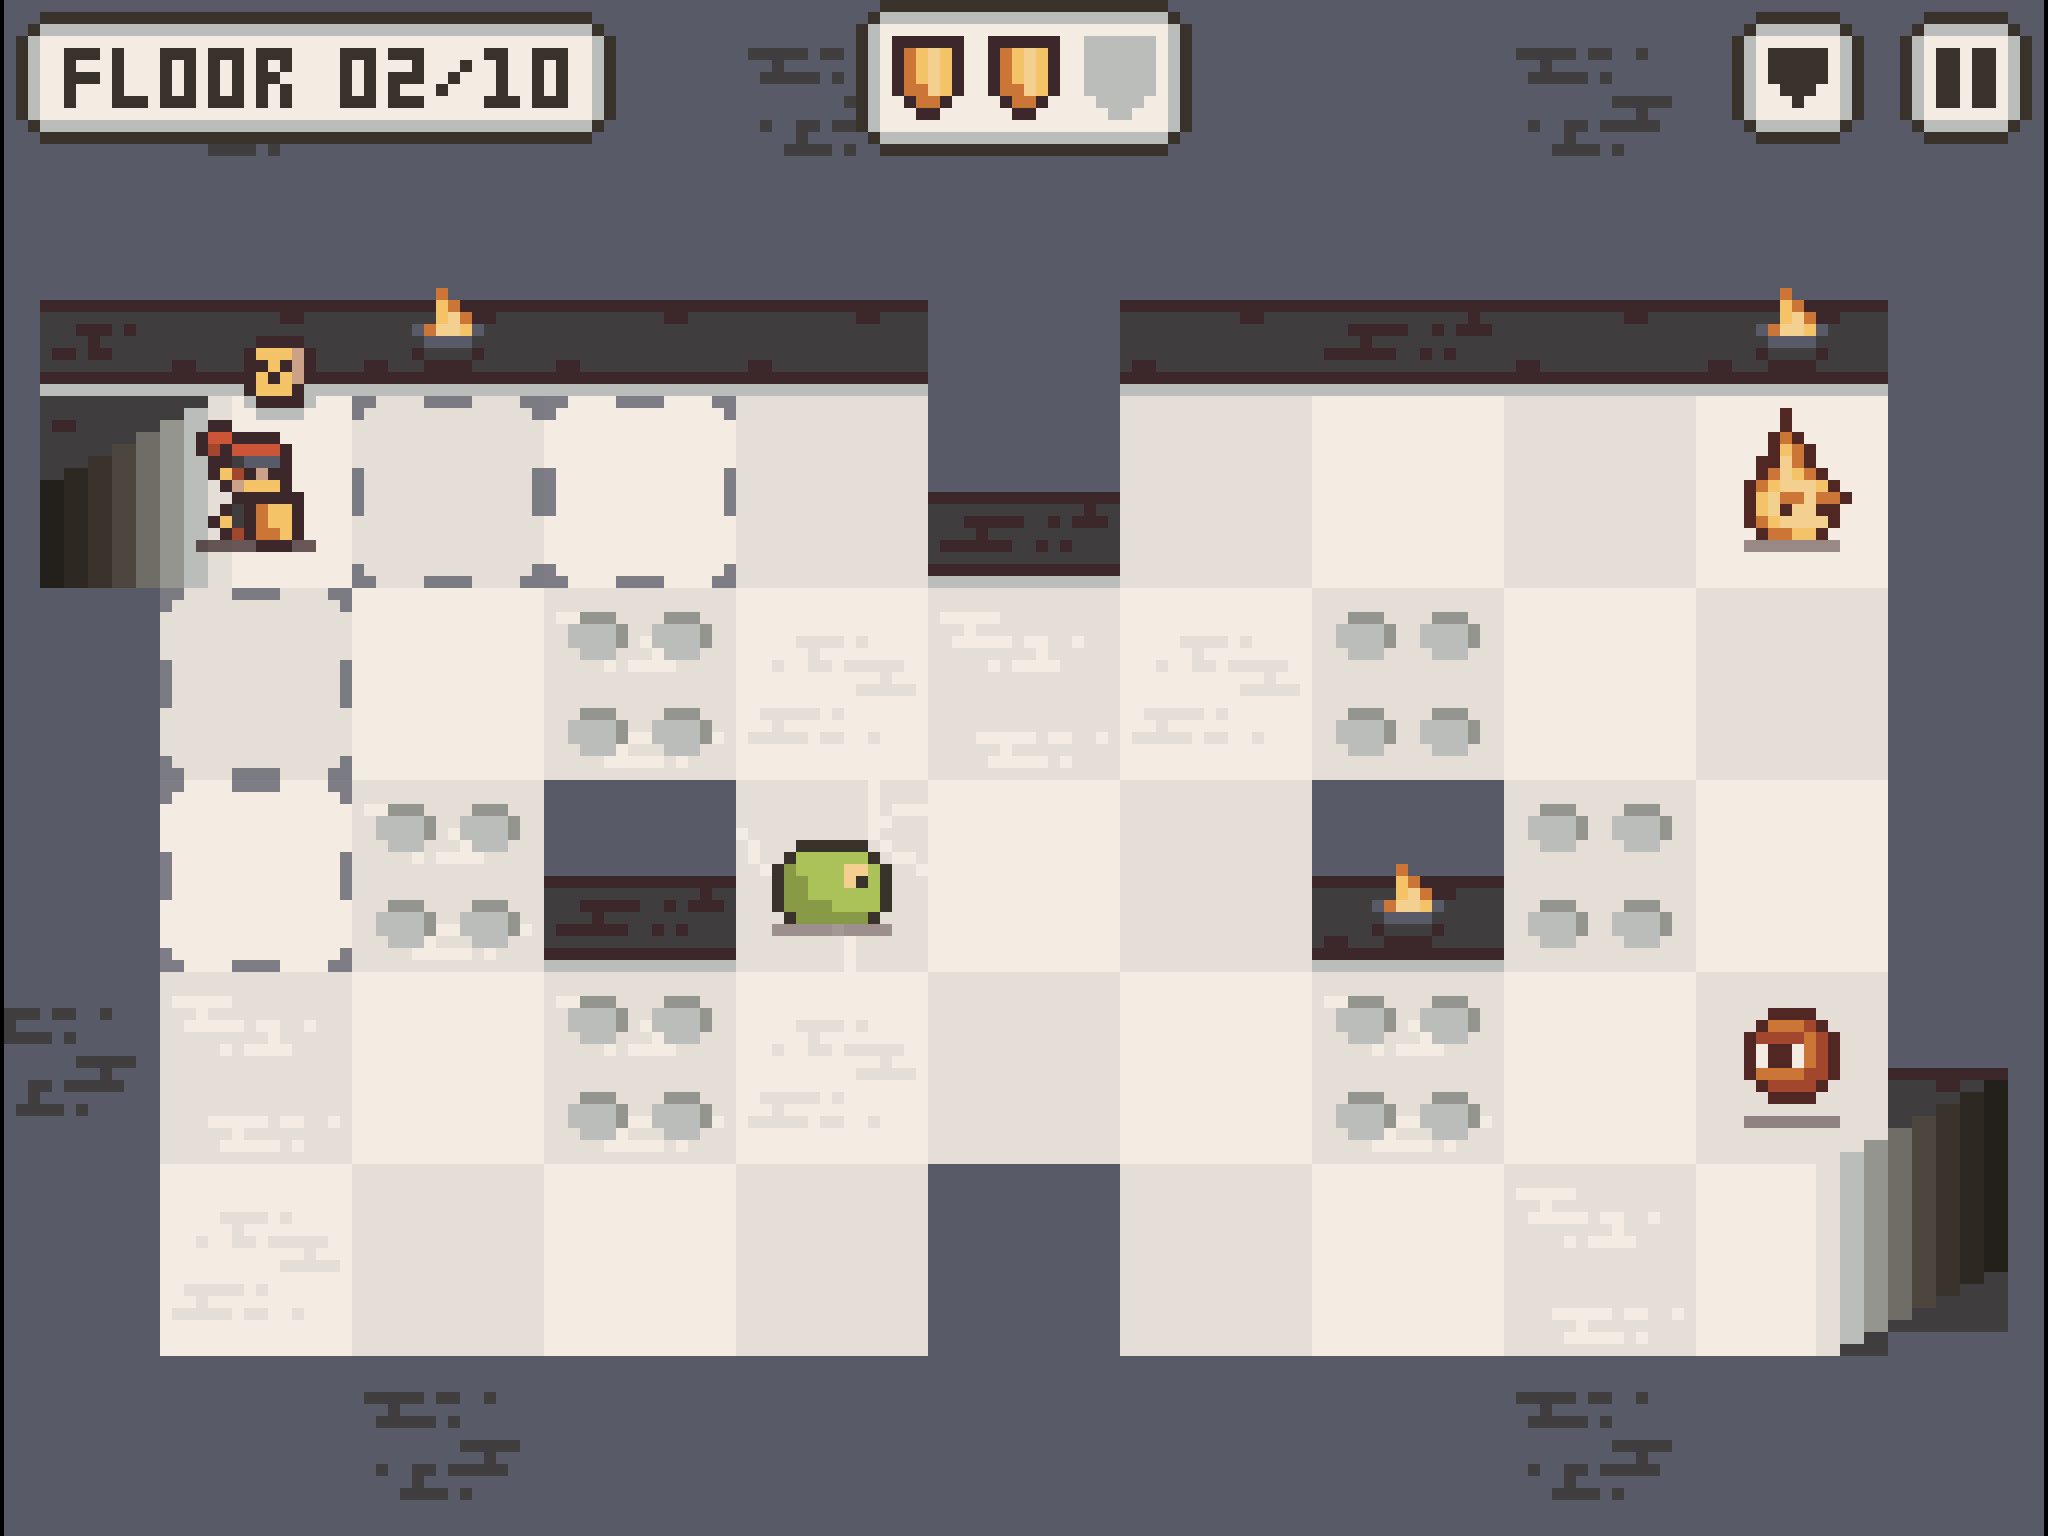 Android owners can now experience chess-like dungeon crawling with MicRogue